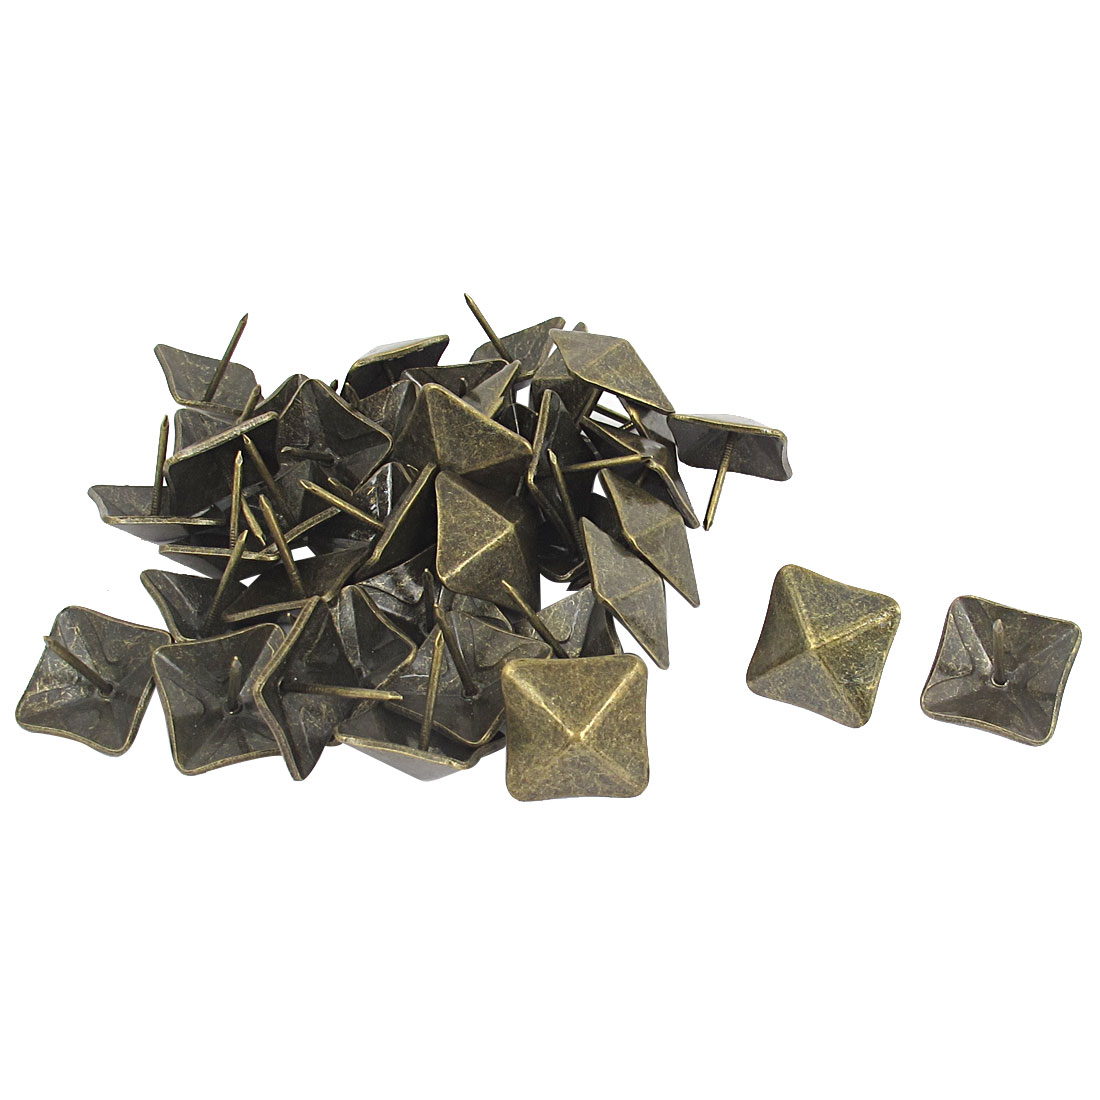 40 Pcs 19mm Dia Bronze Tone Antique Style Square Shaped Message Board Map Thumb Tacks